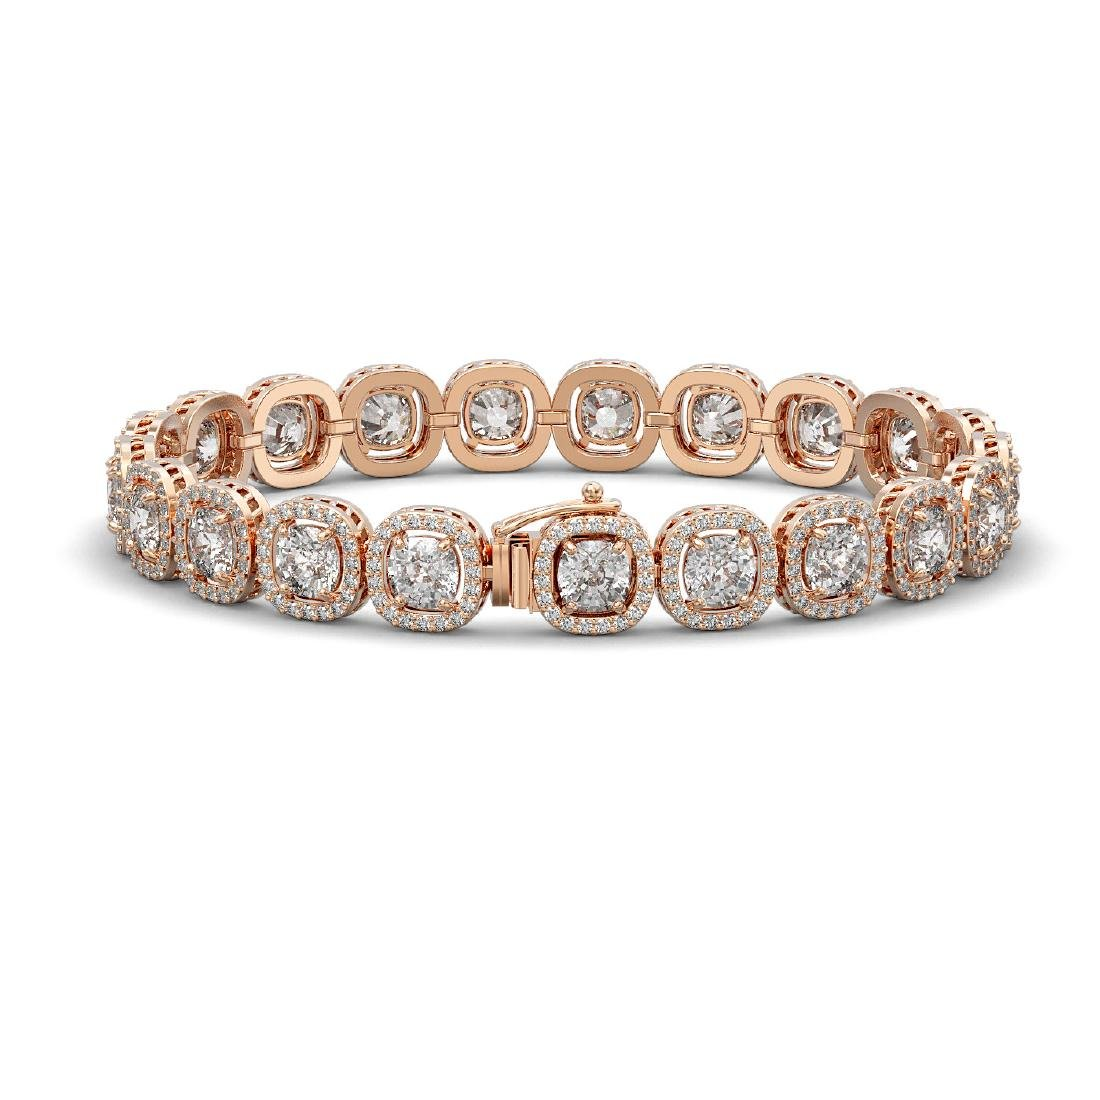 16.54 CTW Cushion Diamond Designer Bracelet 18K Rose - 2